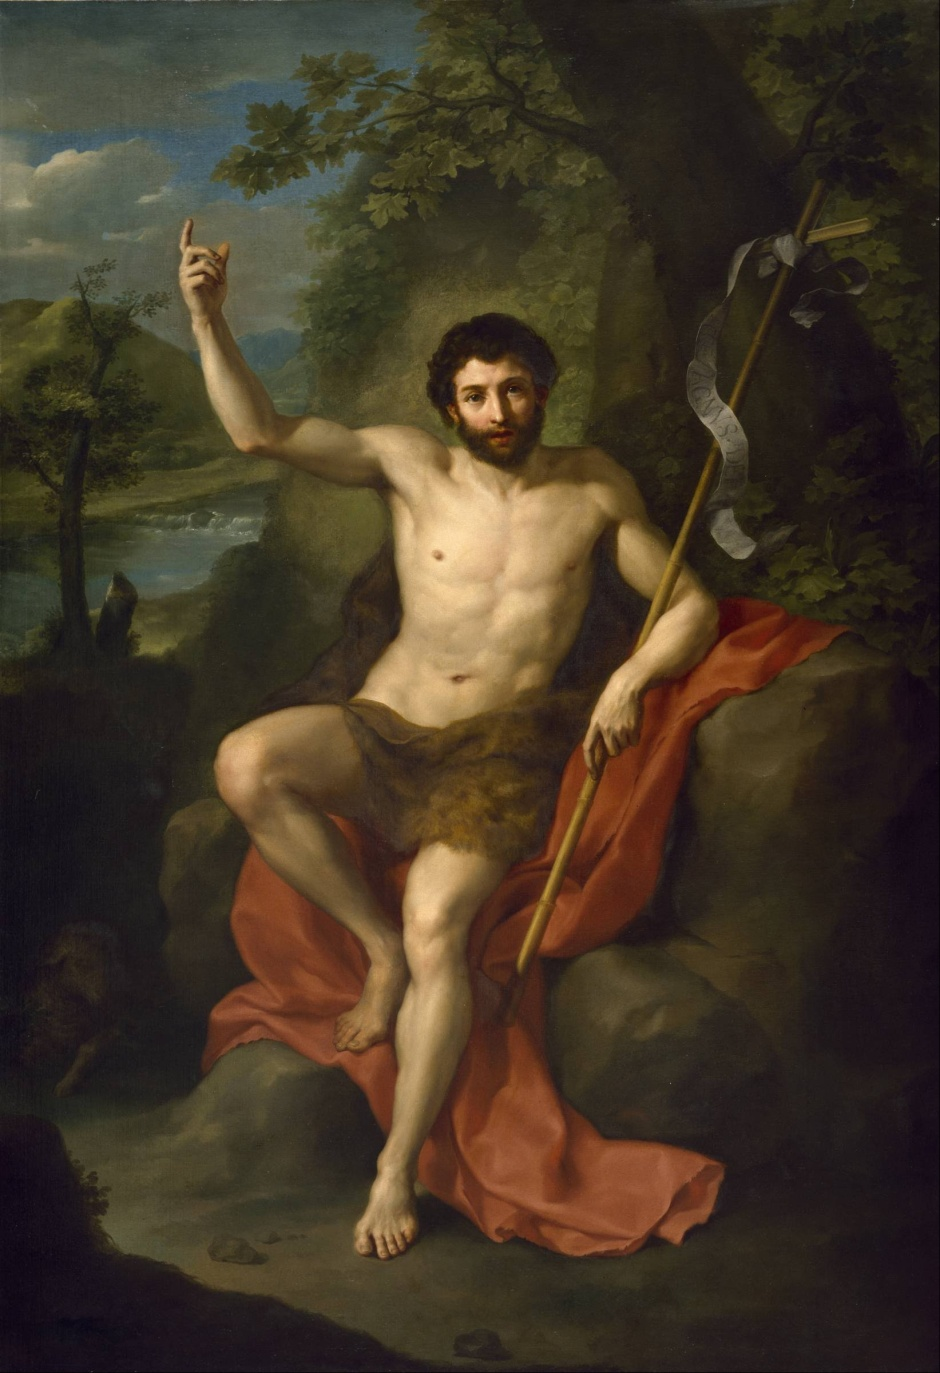 Anton_Raphael_Mengs_-_St._John_the_Baptist_Preaching_in_the_Wilderness_-_Google_Art_Project.jpg